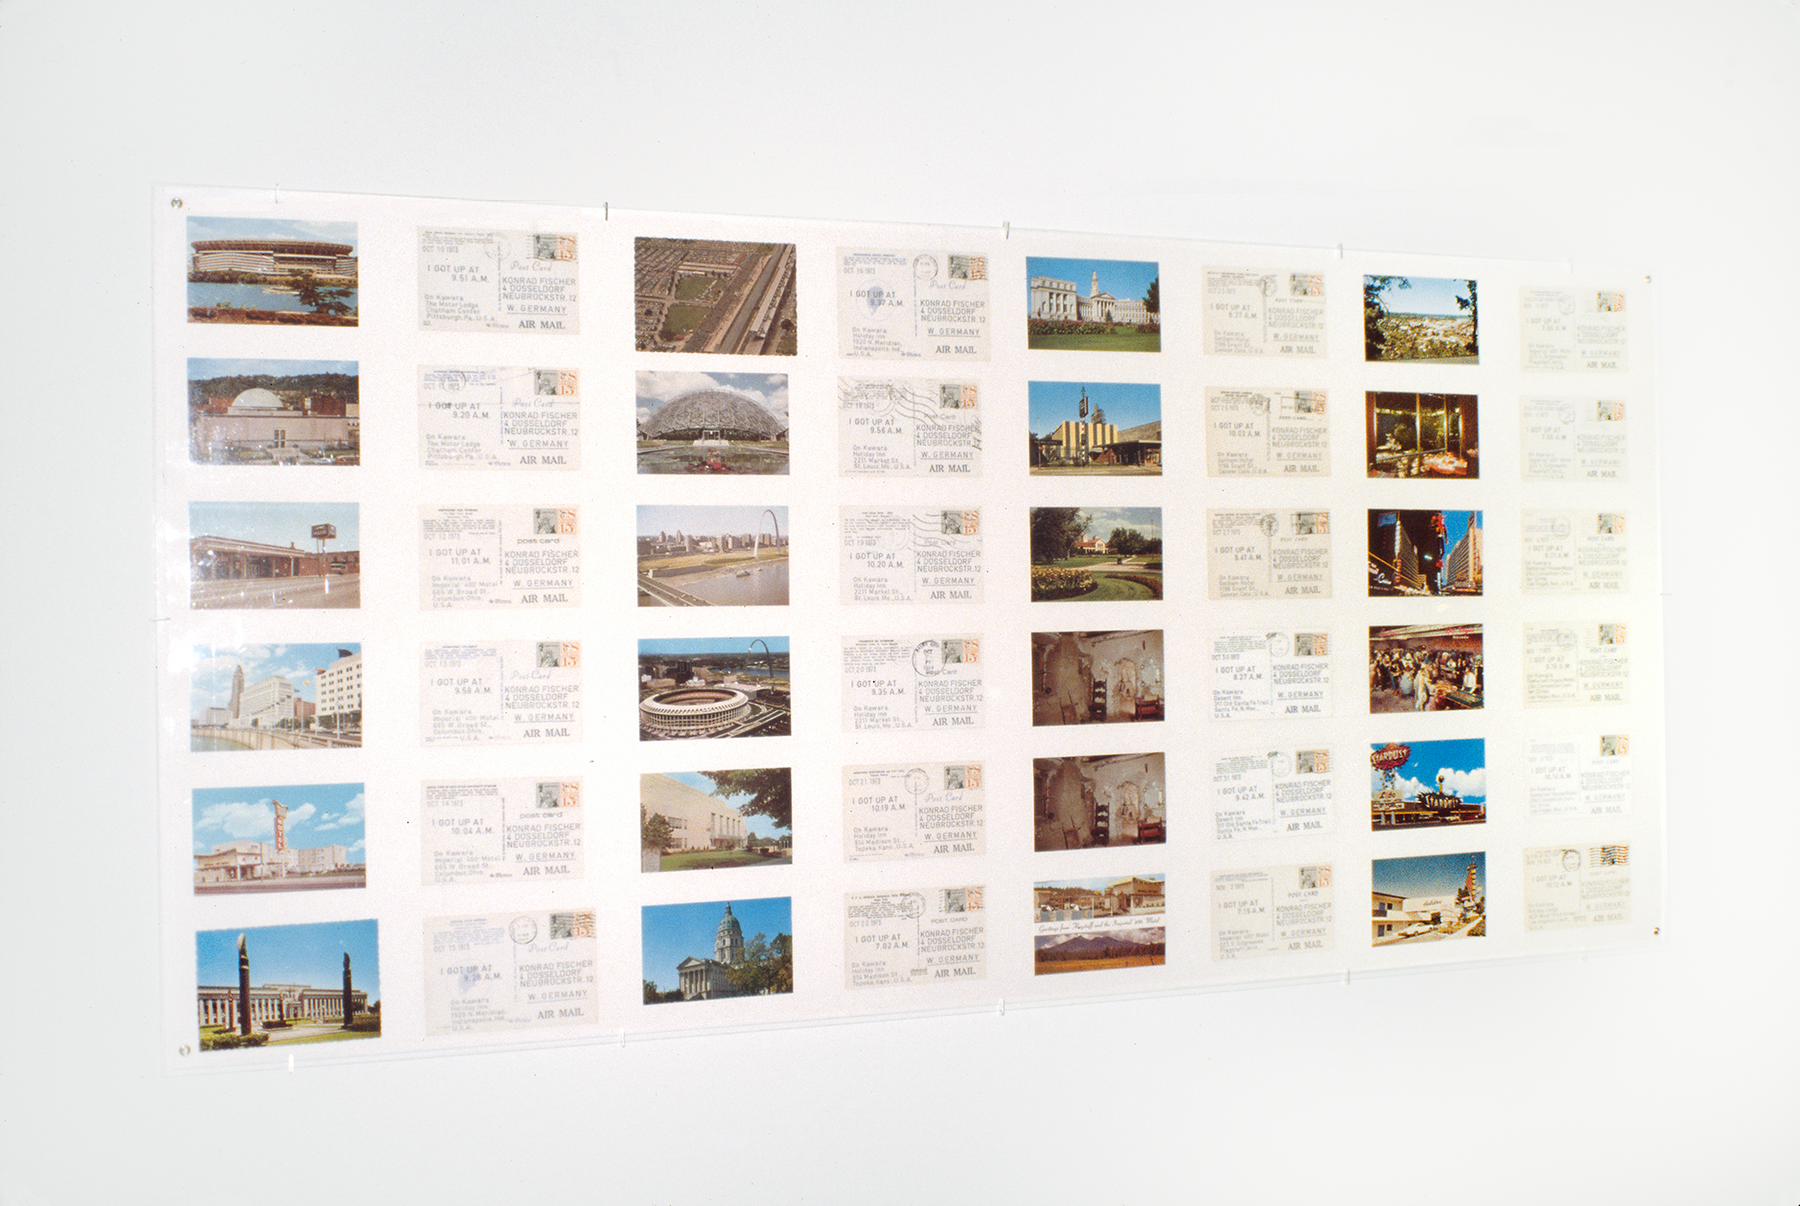 A grid of postcards featuring landmarks in Germany